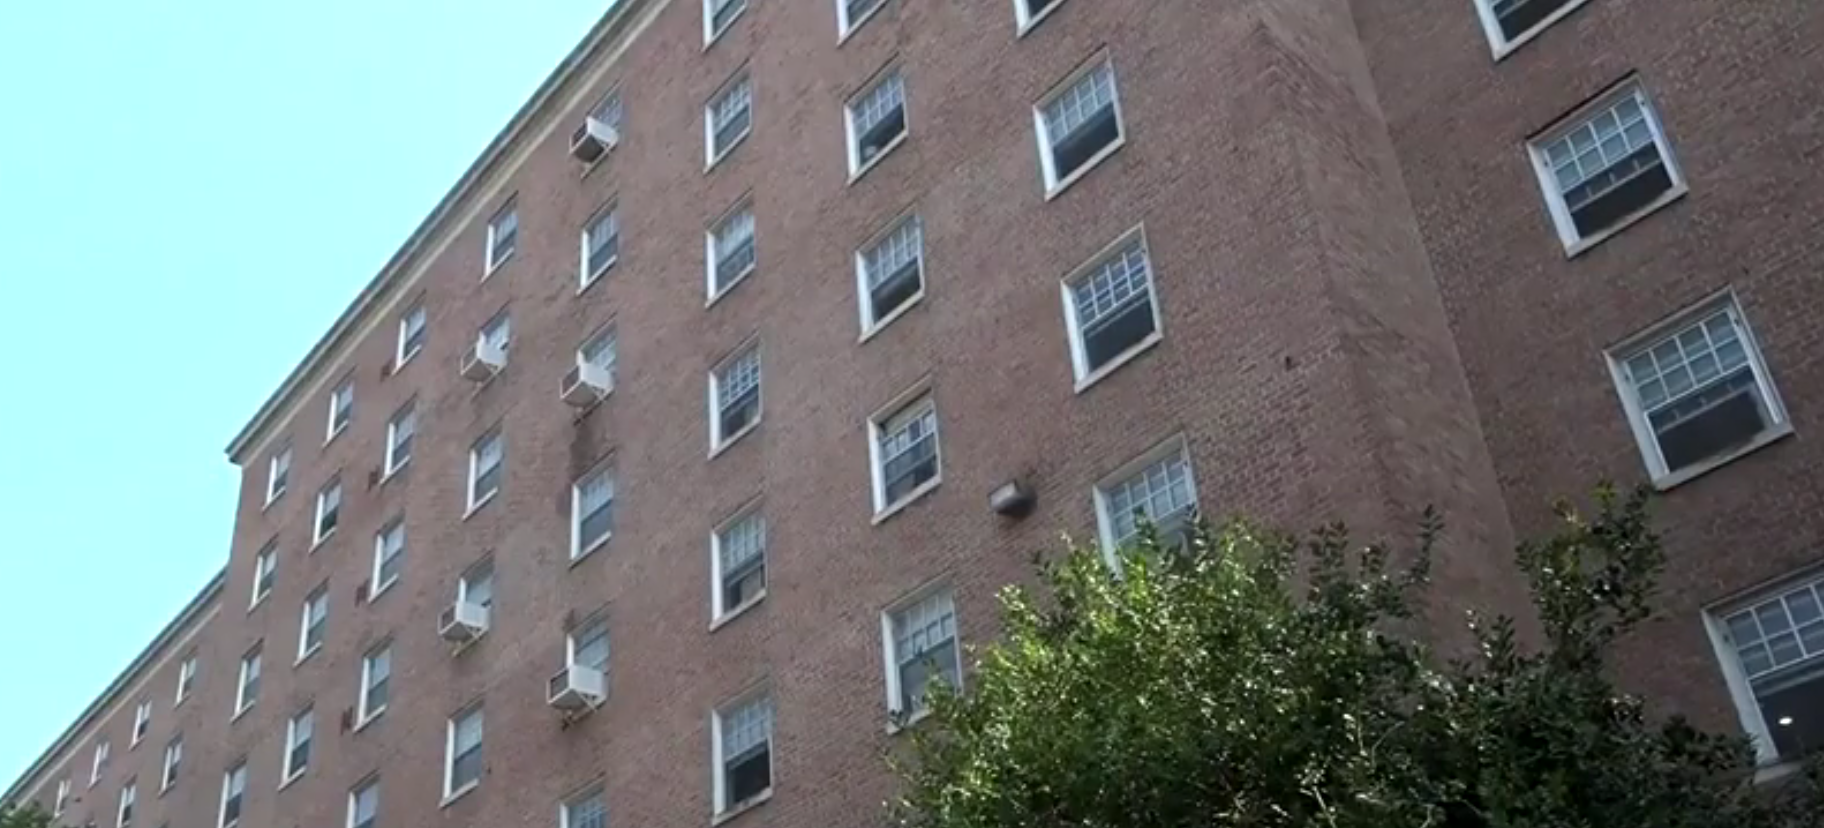 Everyone Is Coughing Mold In Dorms Prompts University